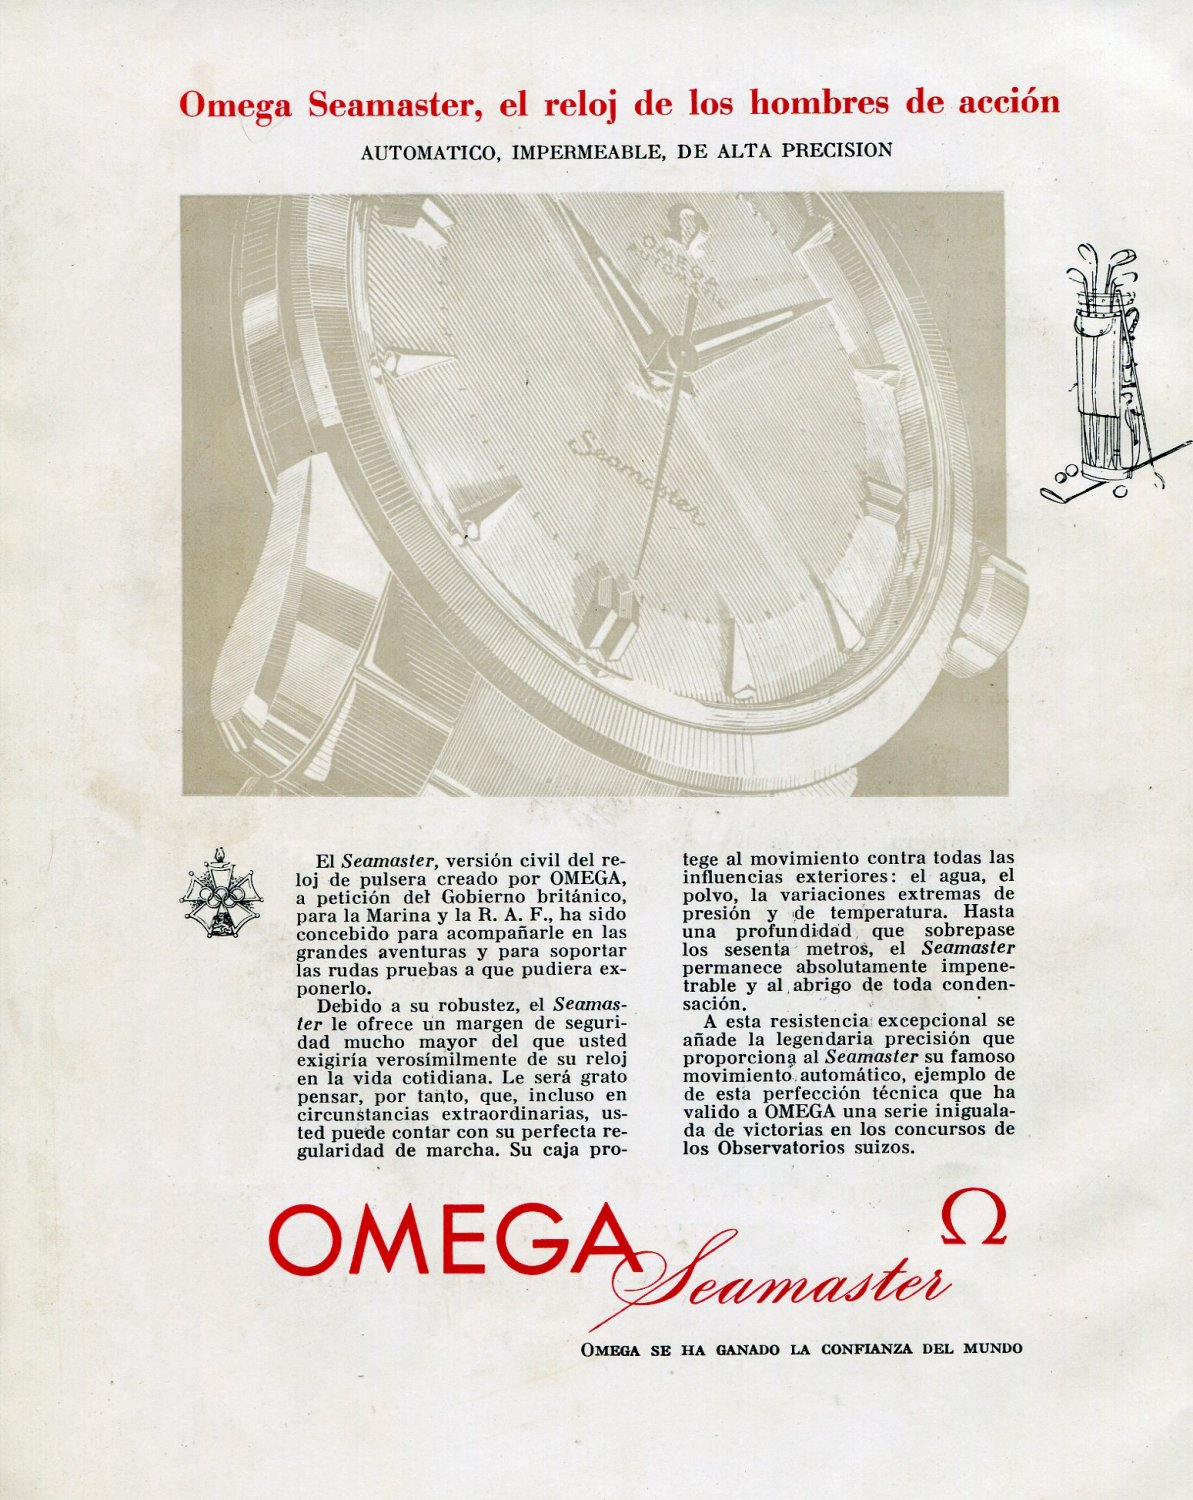 Vintage 1956 Omega Seamaster RAF Royal Air Force Watch Advert Omega Watch Company 1950s Spanish Ad